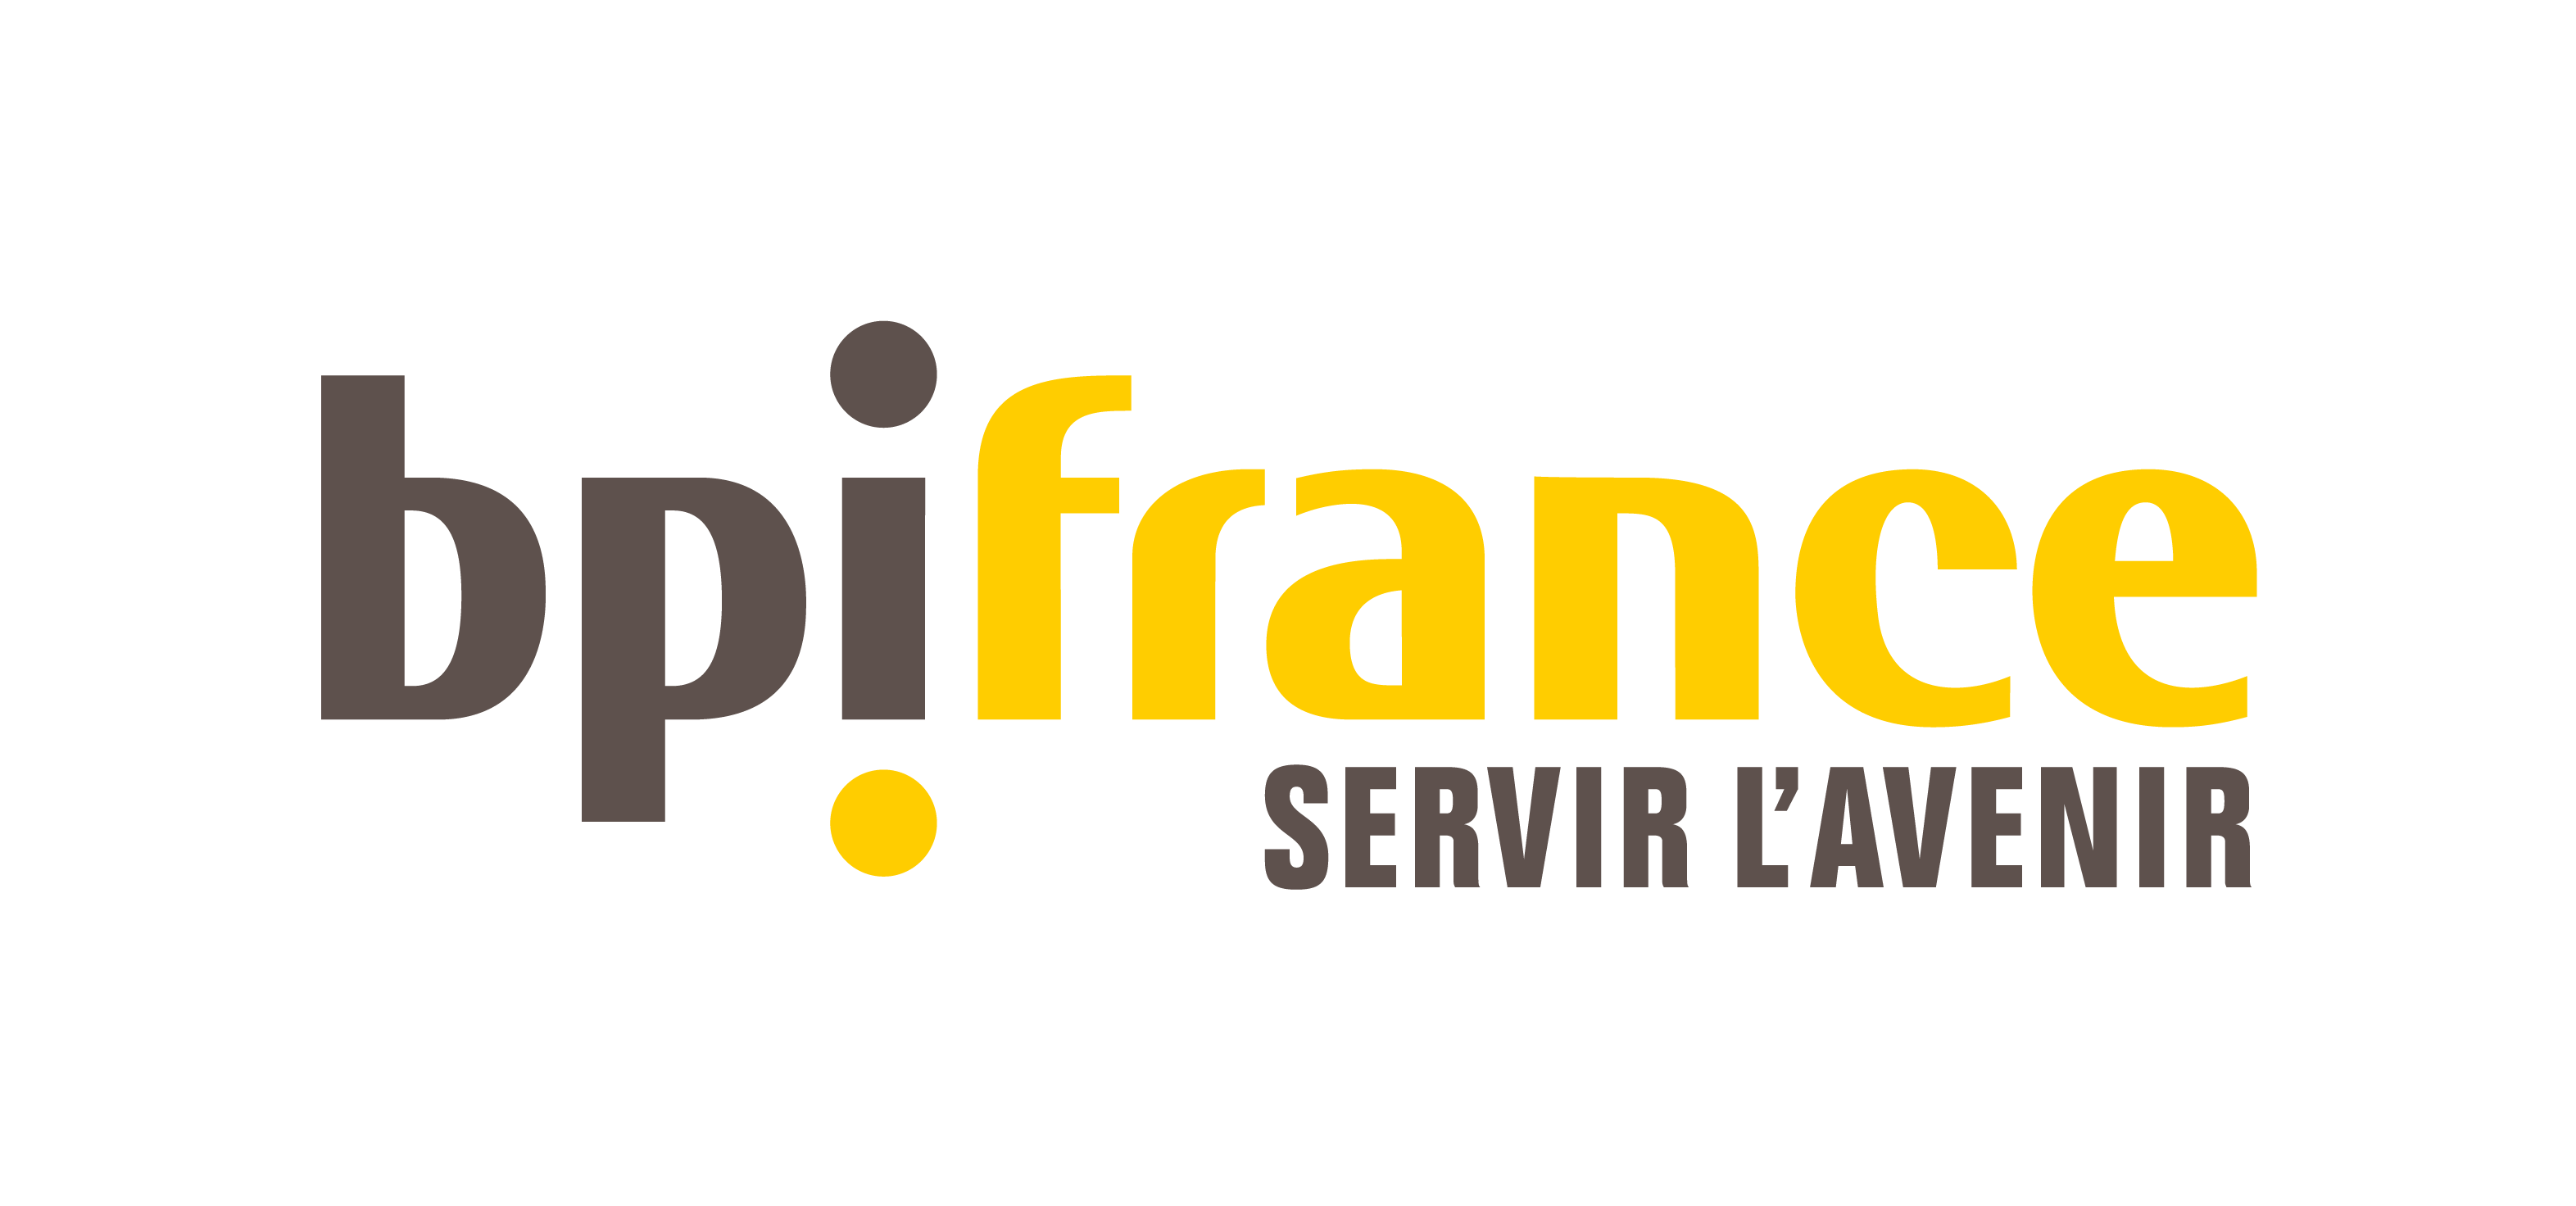 Bpifrance_VP_SD_FB_RVB